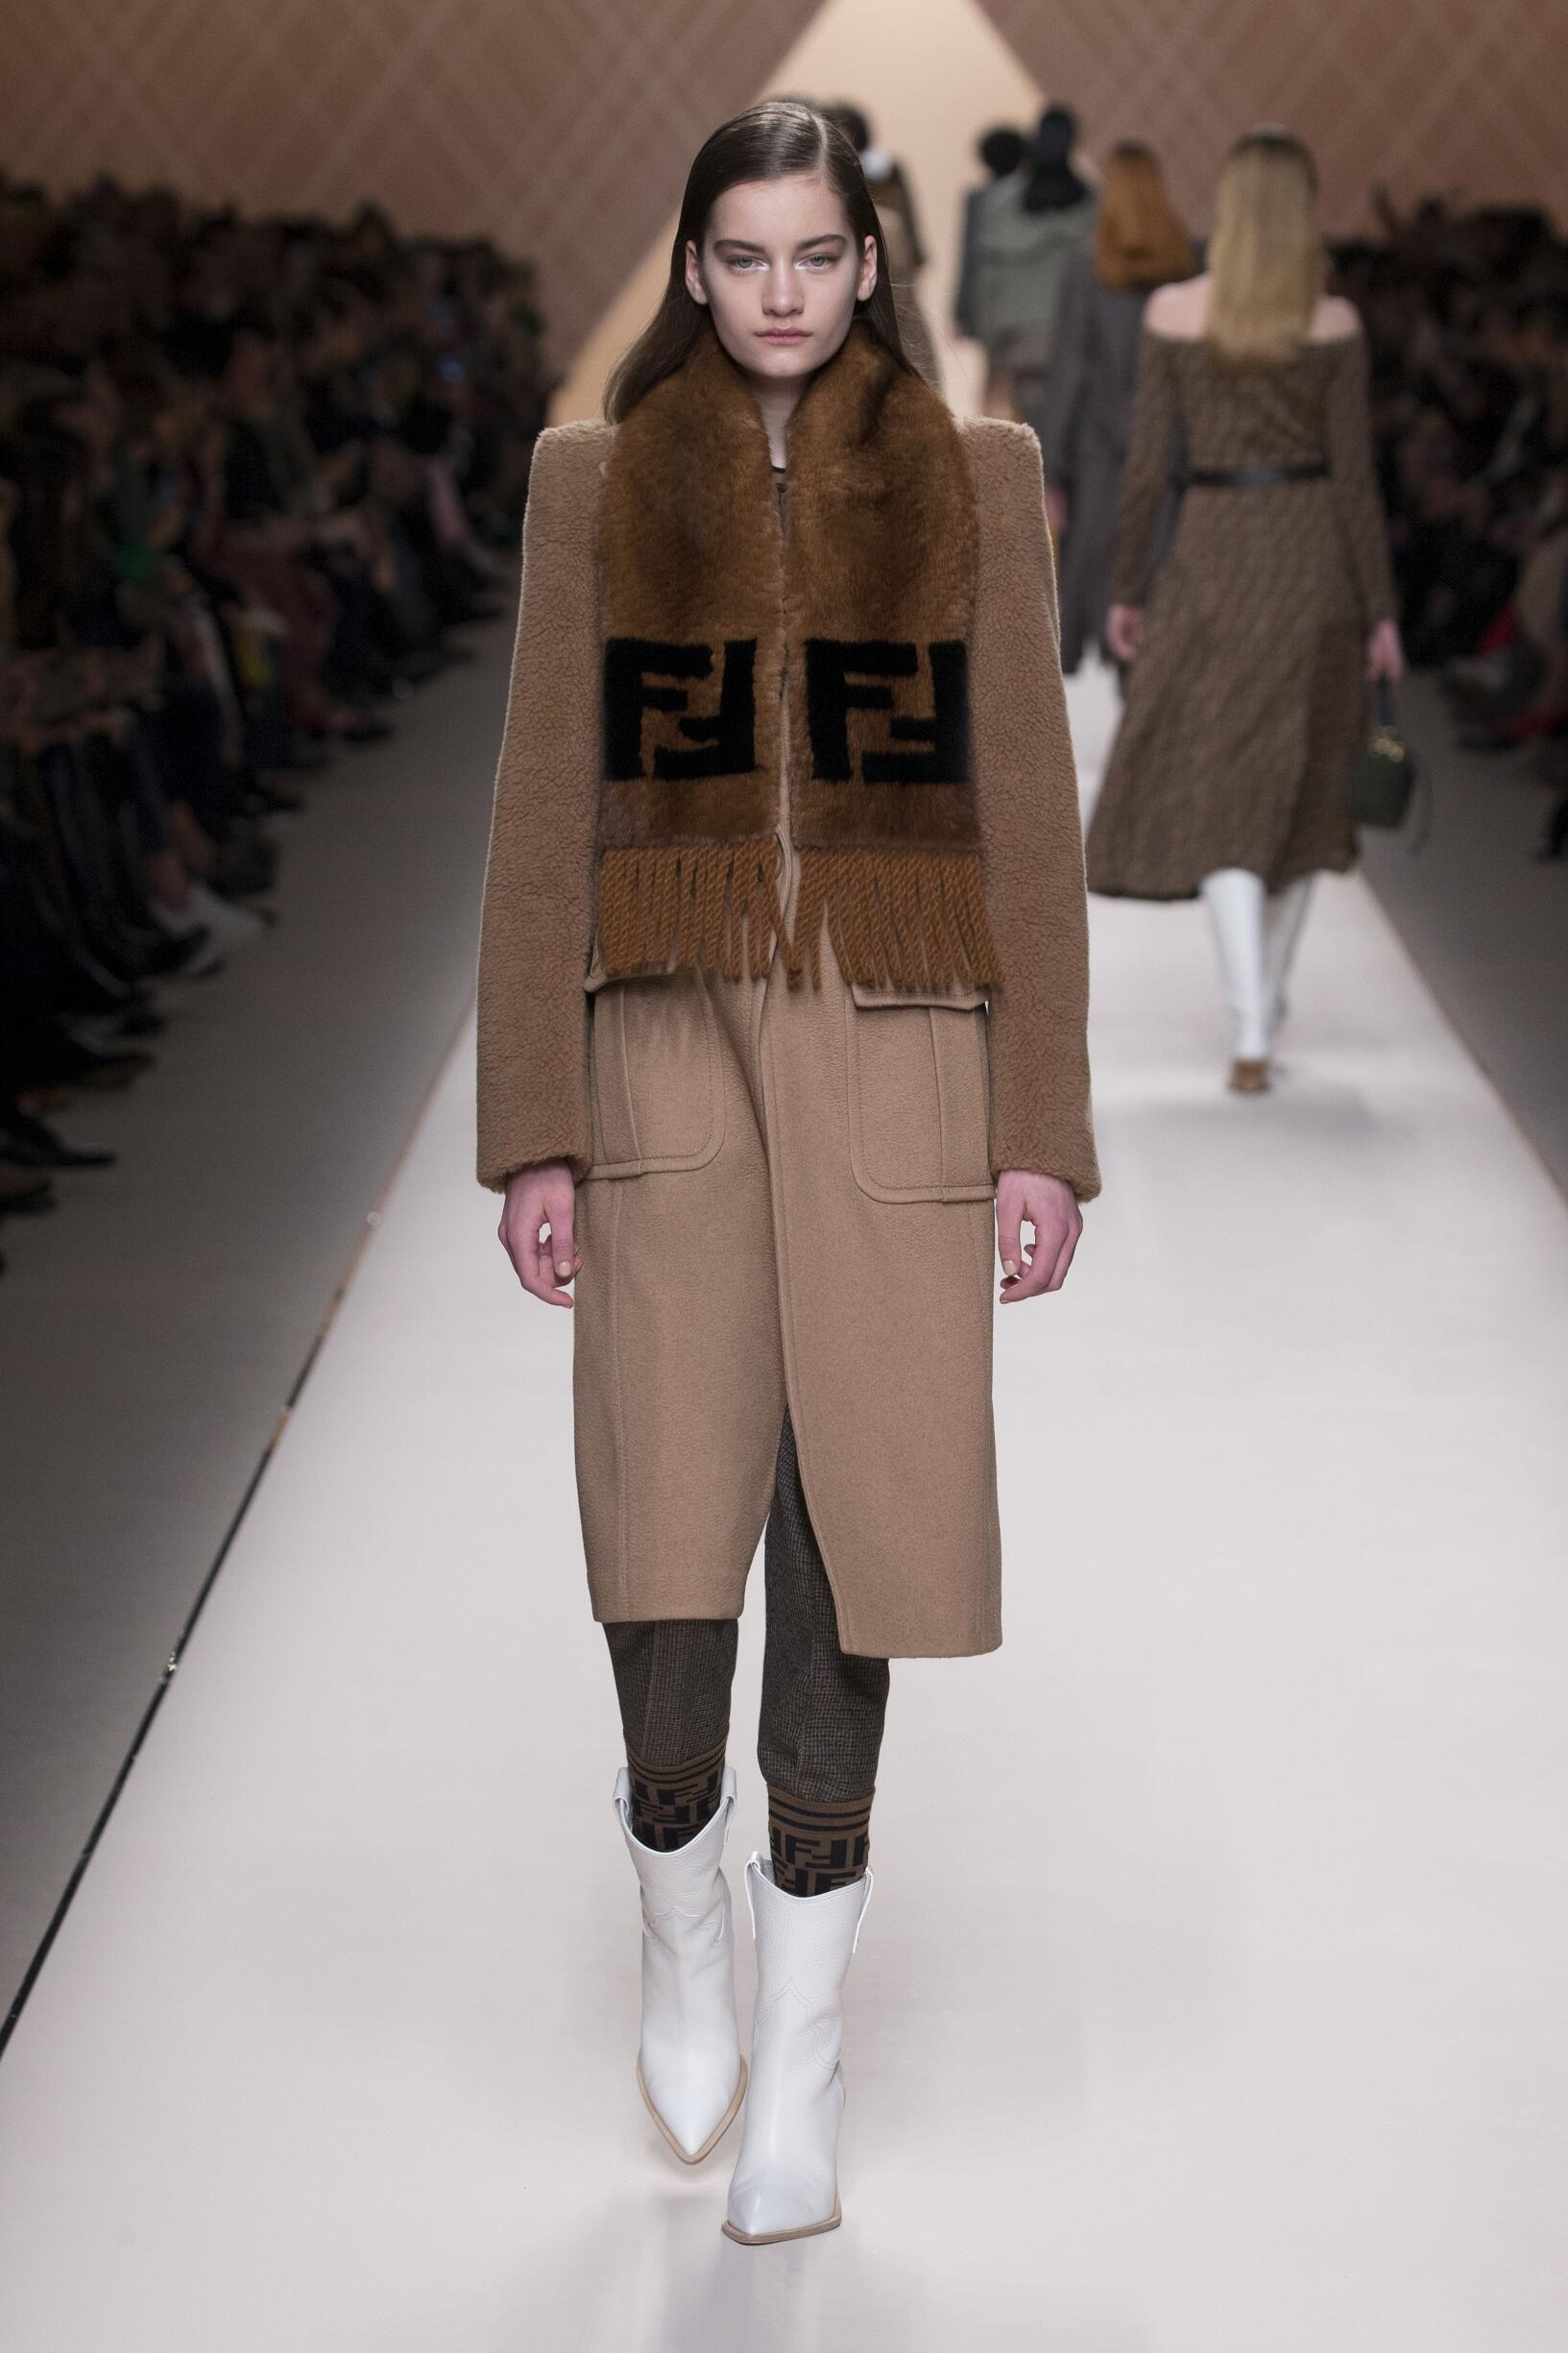 Fall Fashion Woman Trends 2018 Fendi